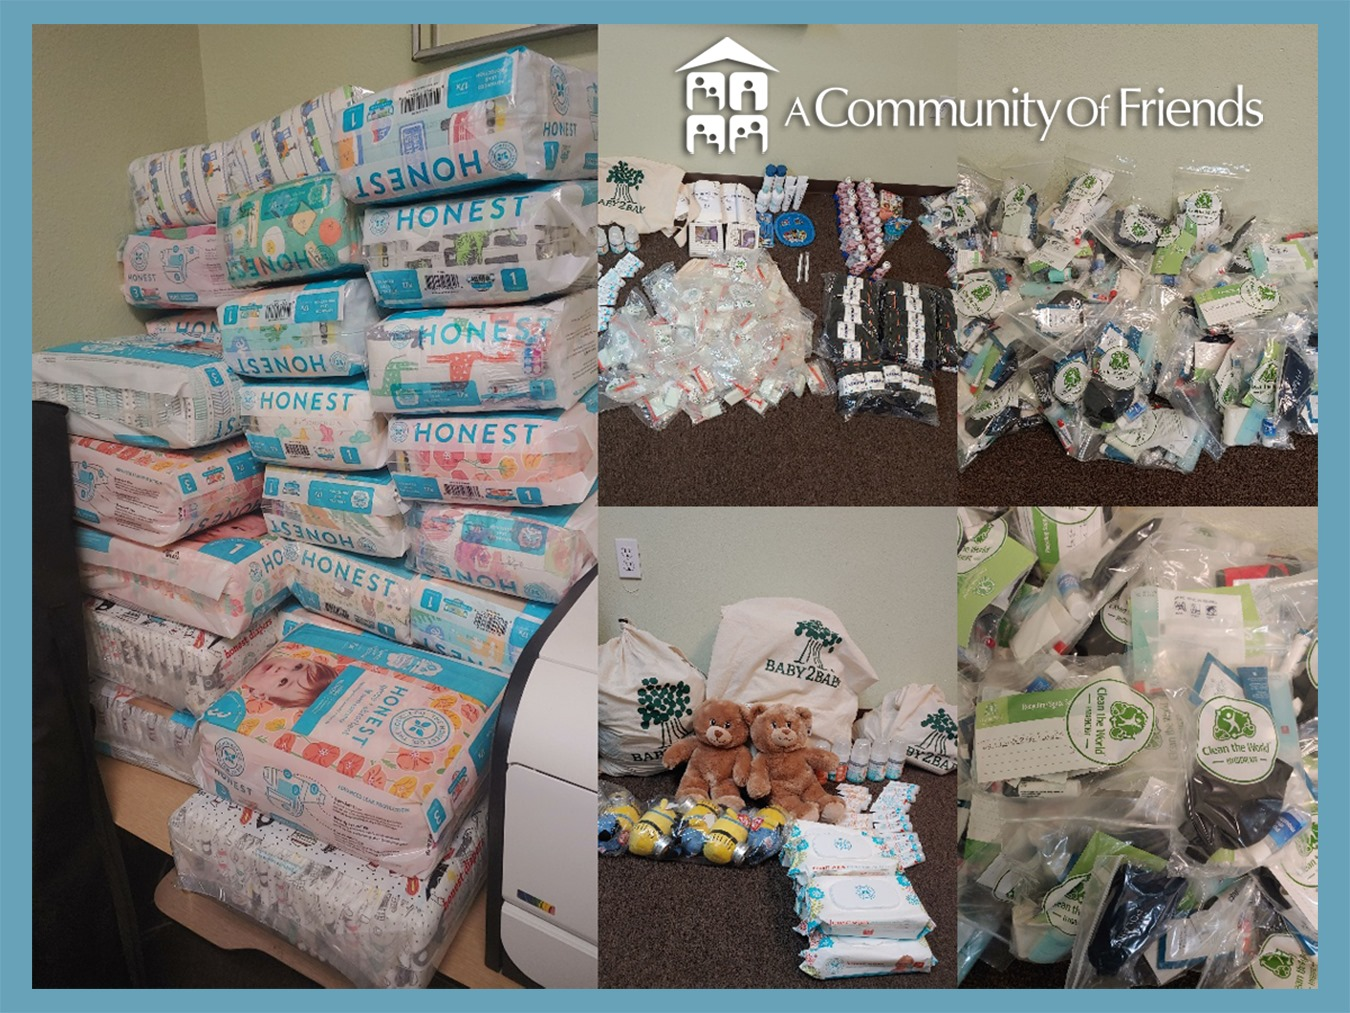 ACOF Receives In-Kind Donations from Baby2Baby